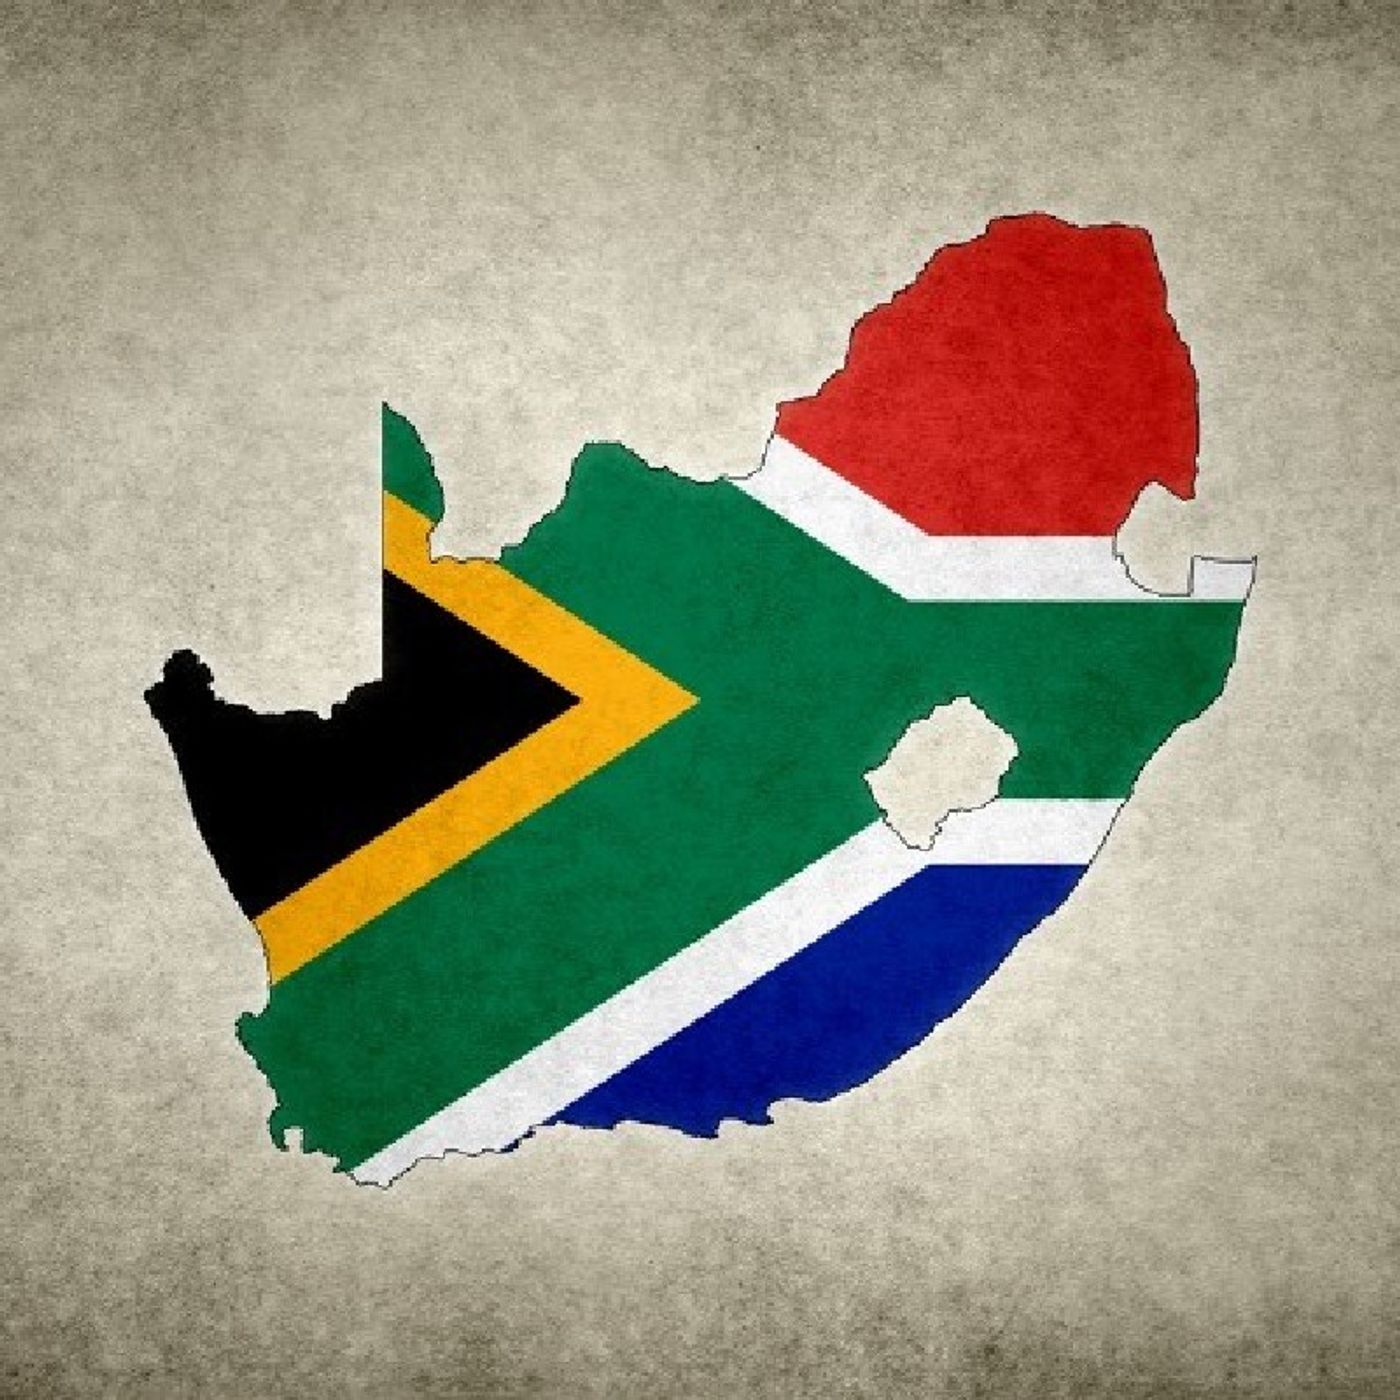 Episode 1400 - South Africa in the Hands of the Global Elites?